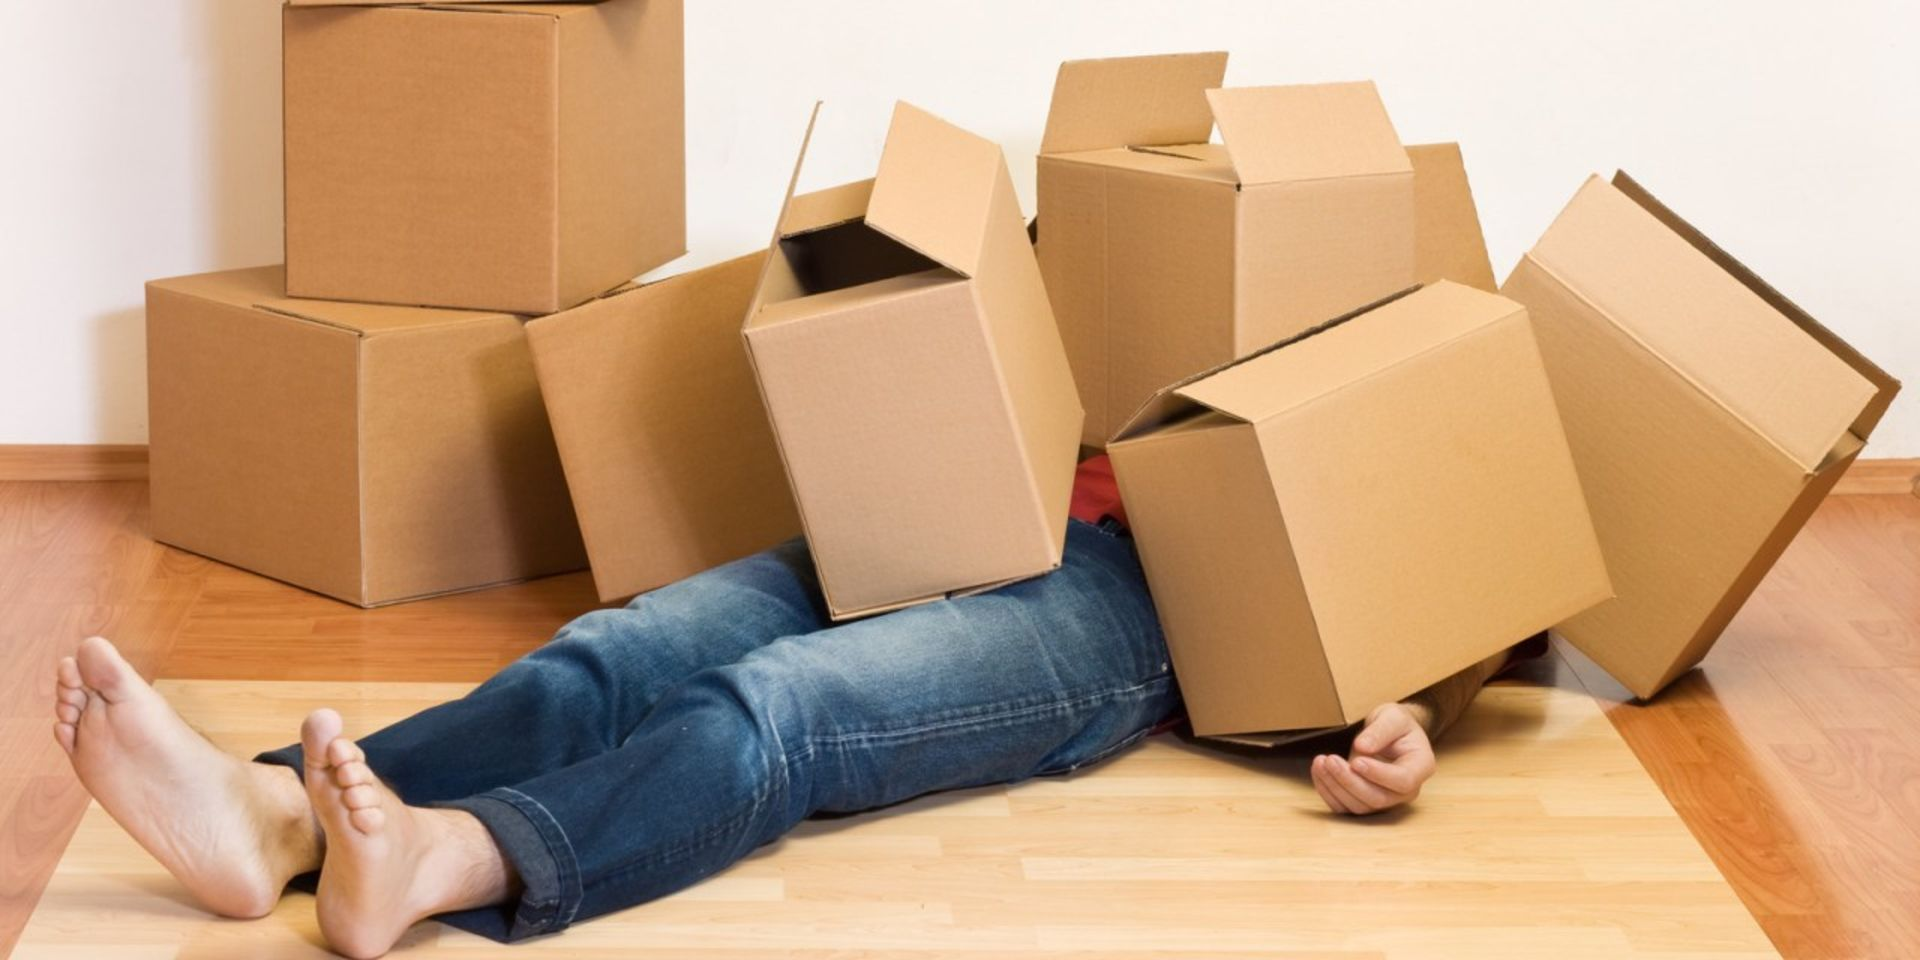 What to pack first when moving house?